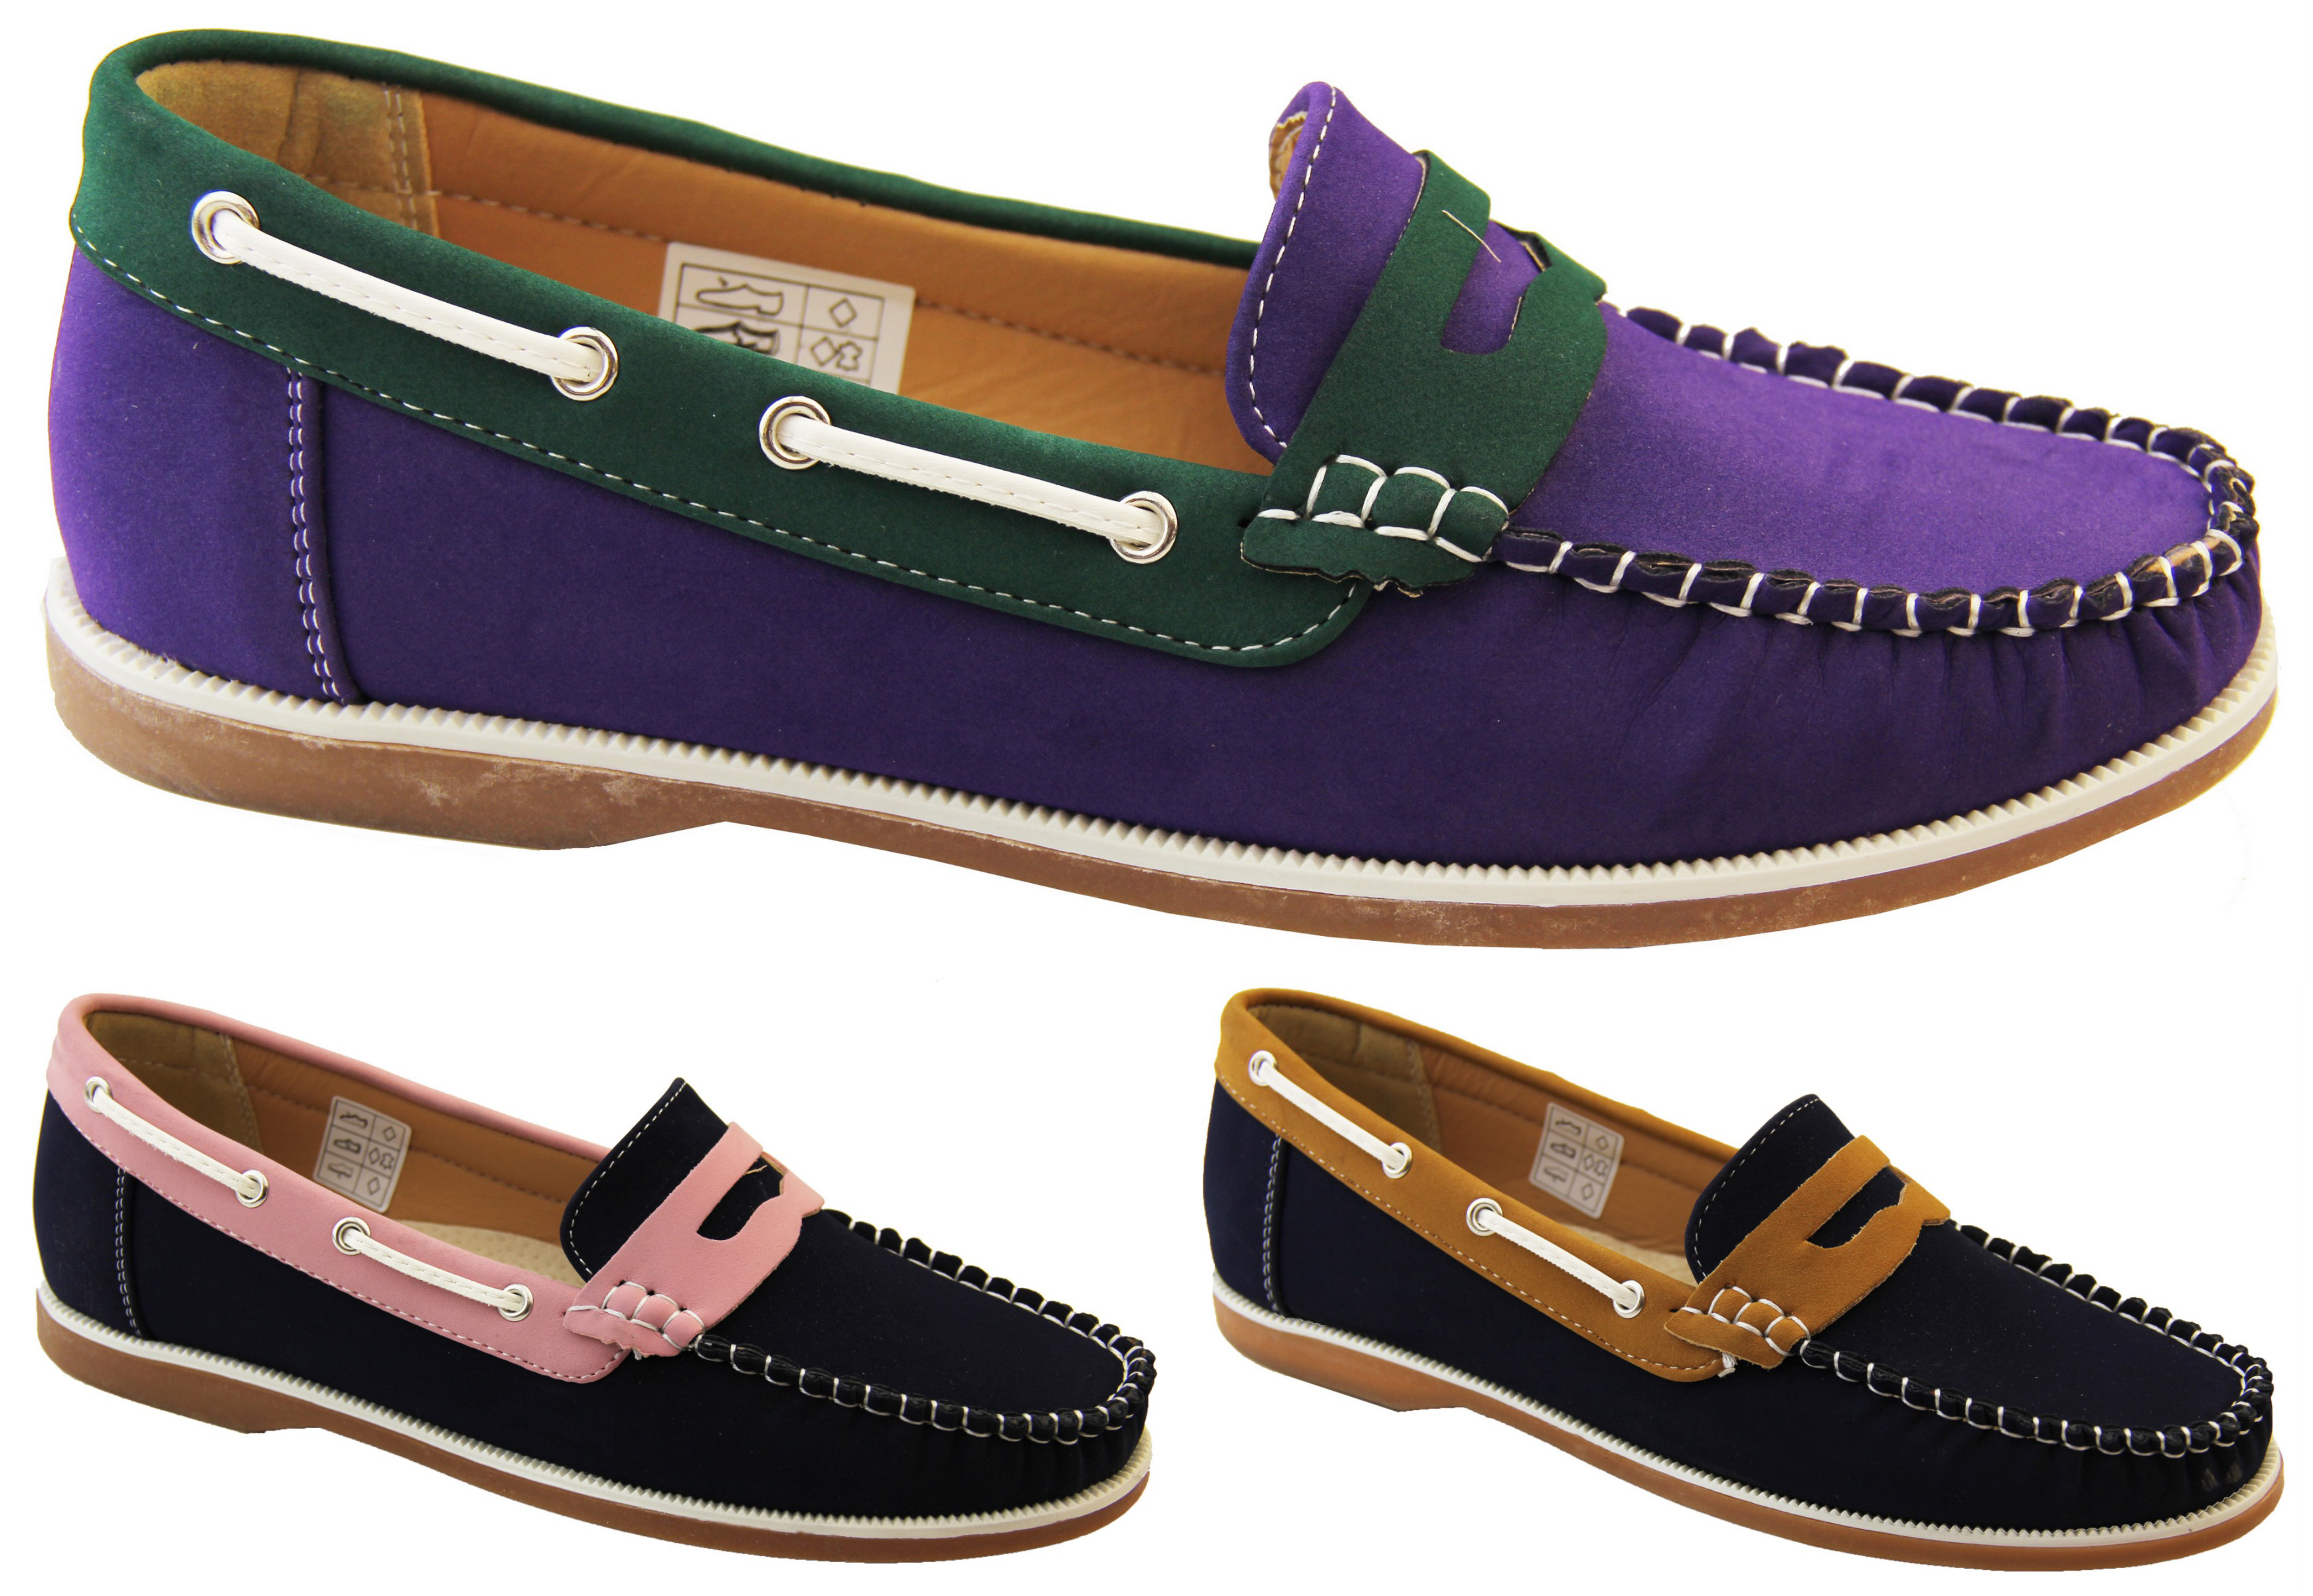 ba38fef265f Ladies Faux Leather Nubuck SHORESIDE Smart Moccasins Deck Shoes Loafers  Size 4-8